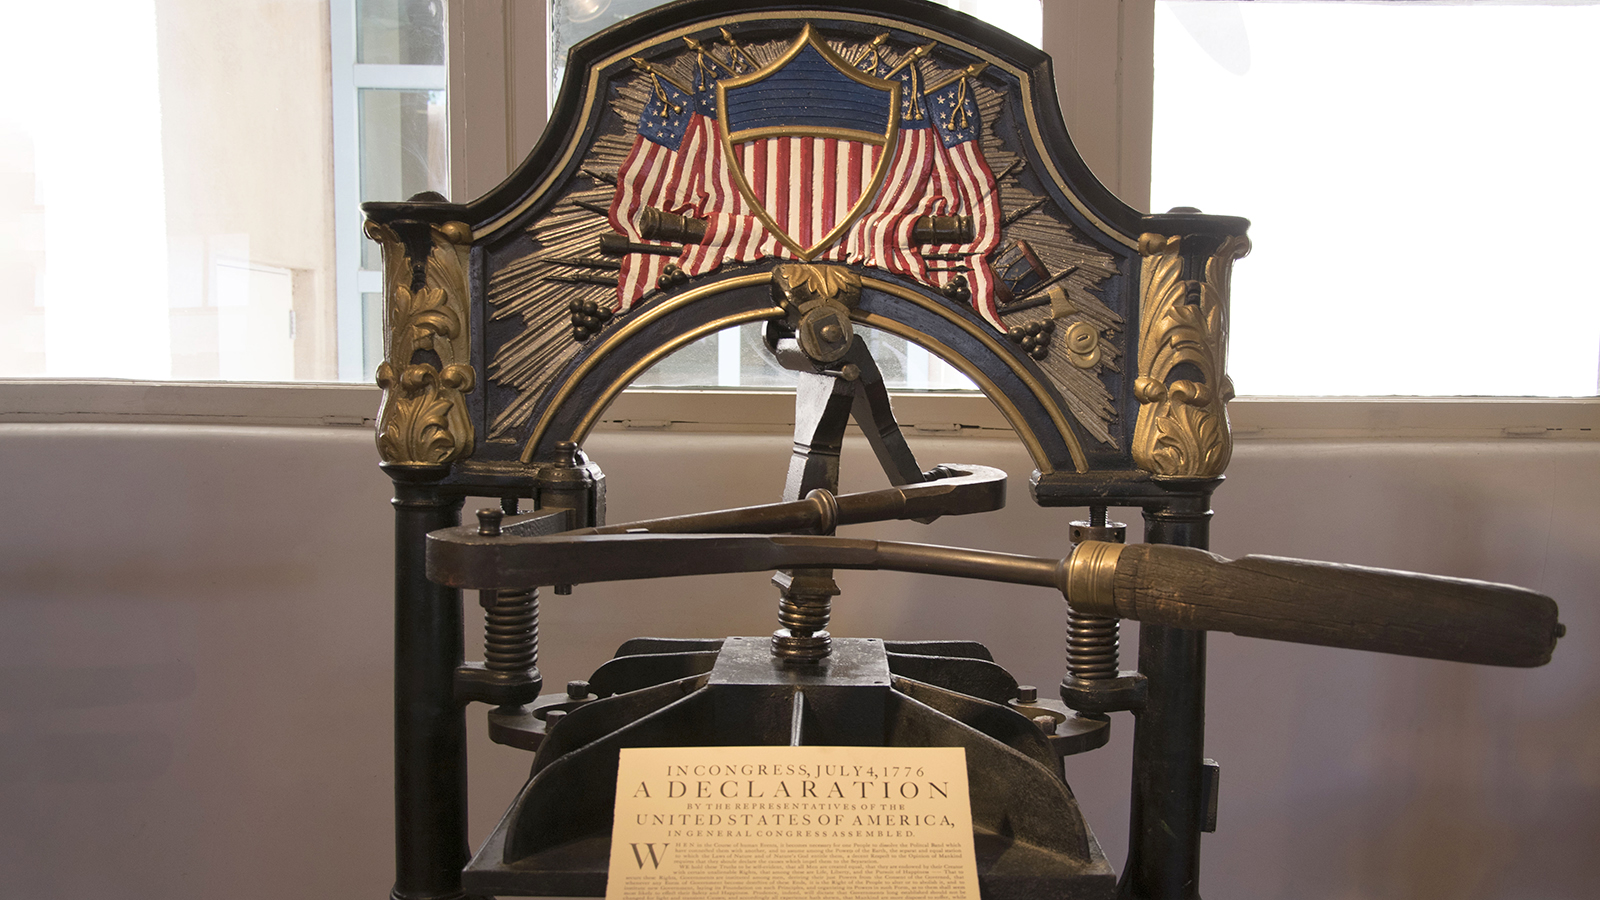 Washington hand press with a commemorative reprinting of the Declaration of Independence. Photo by Hannah Abelbeck